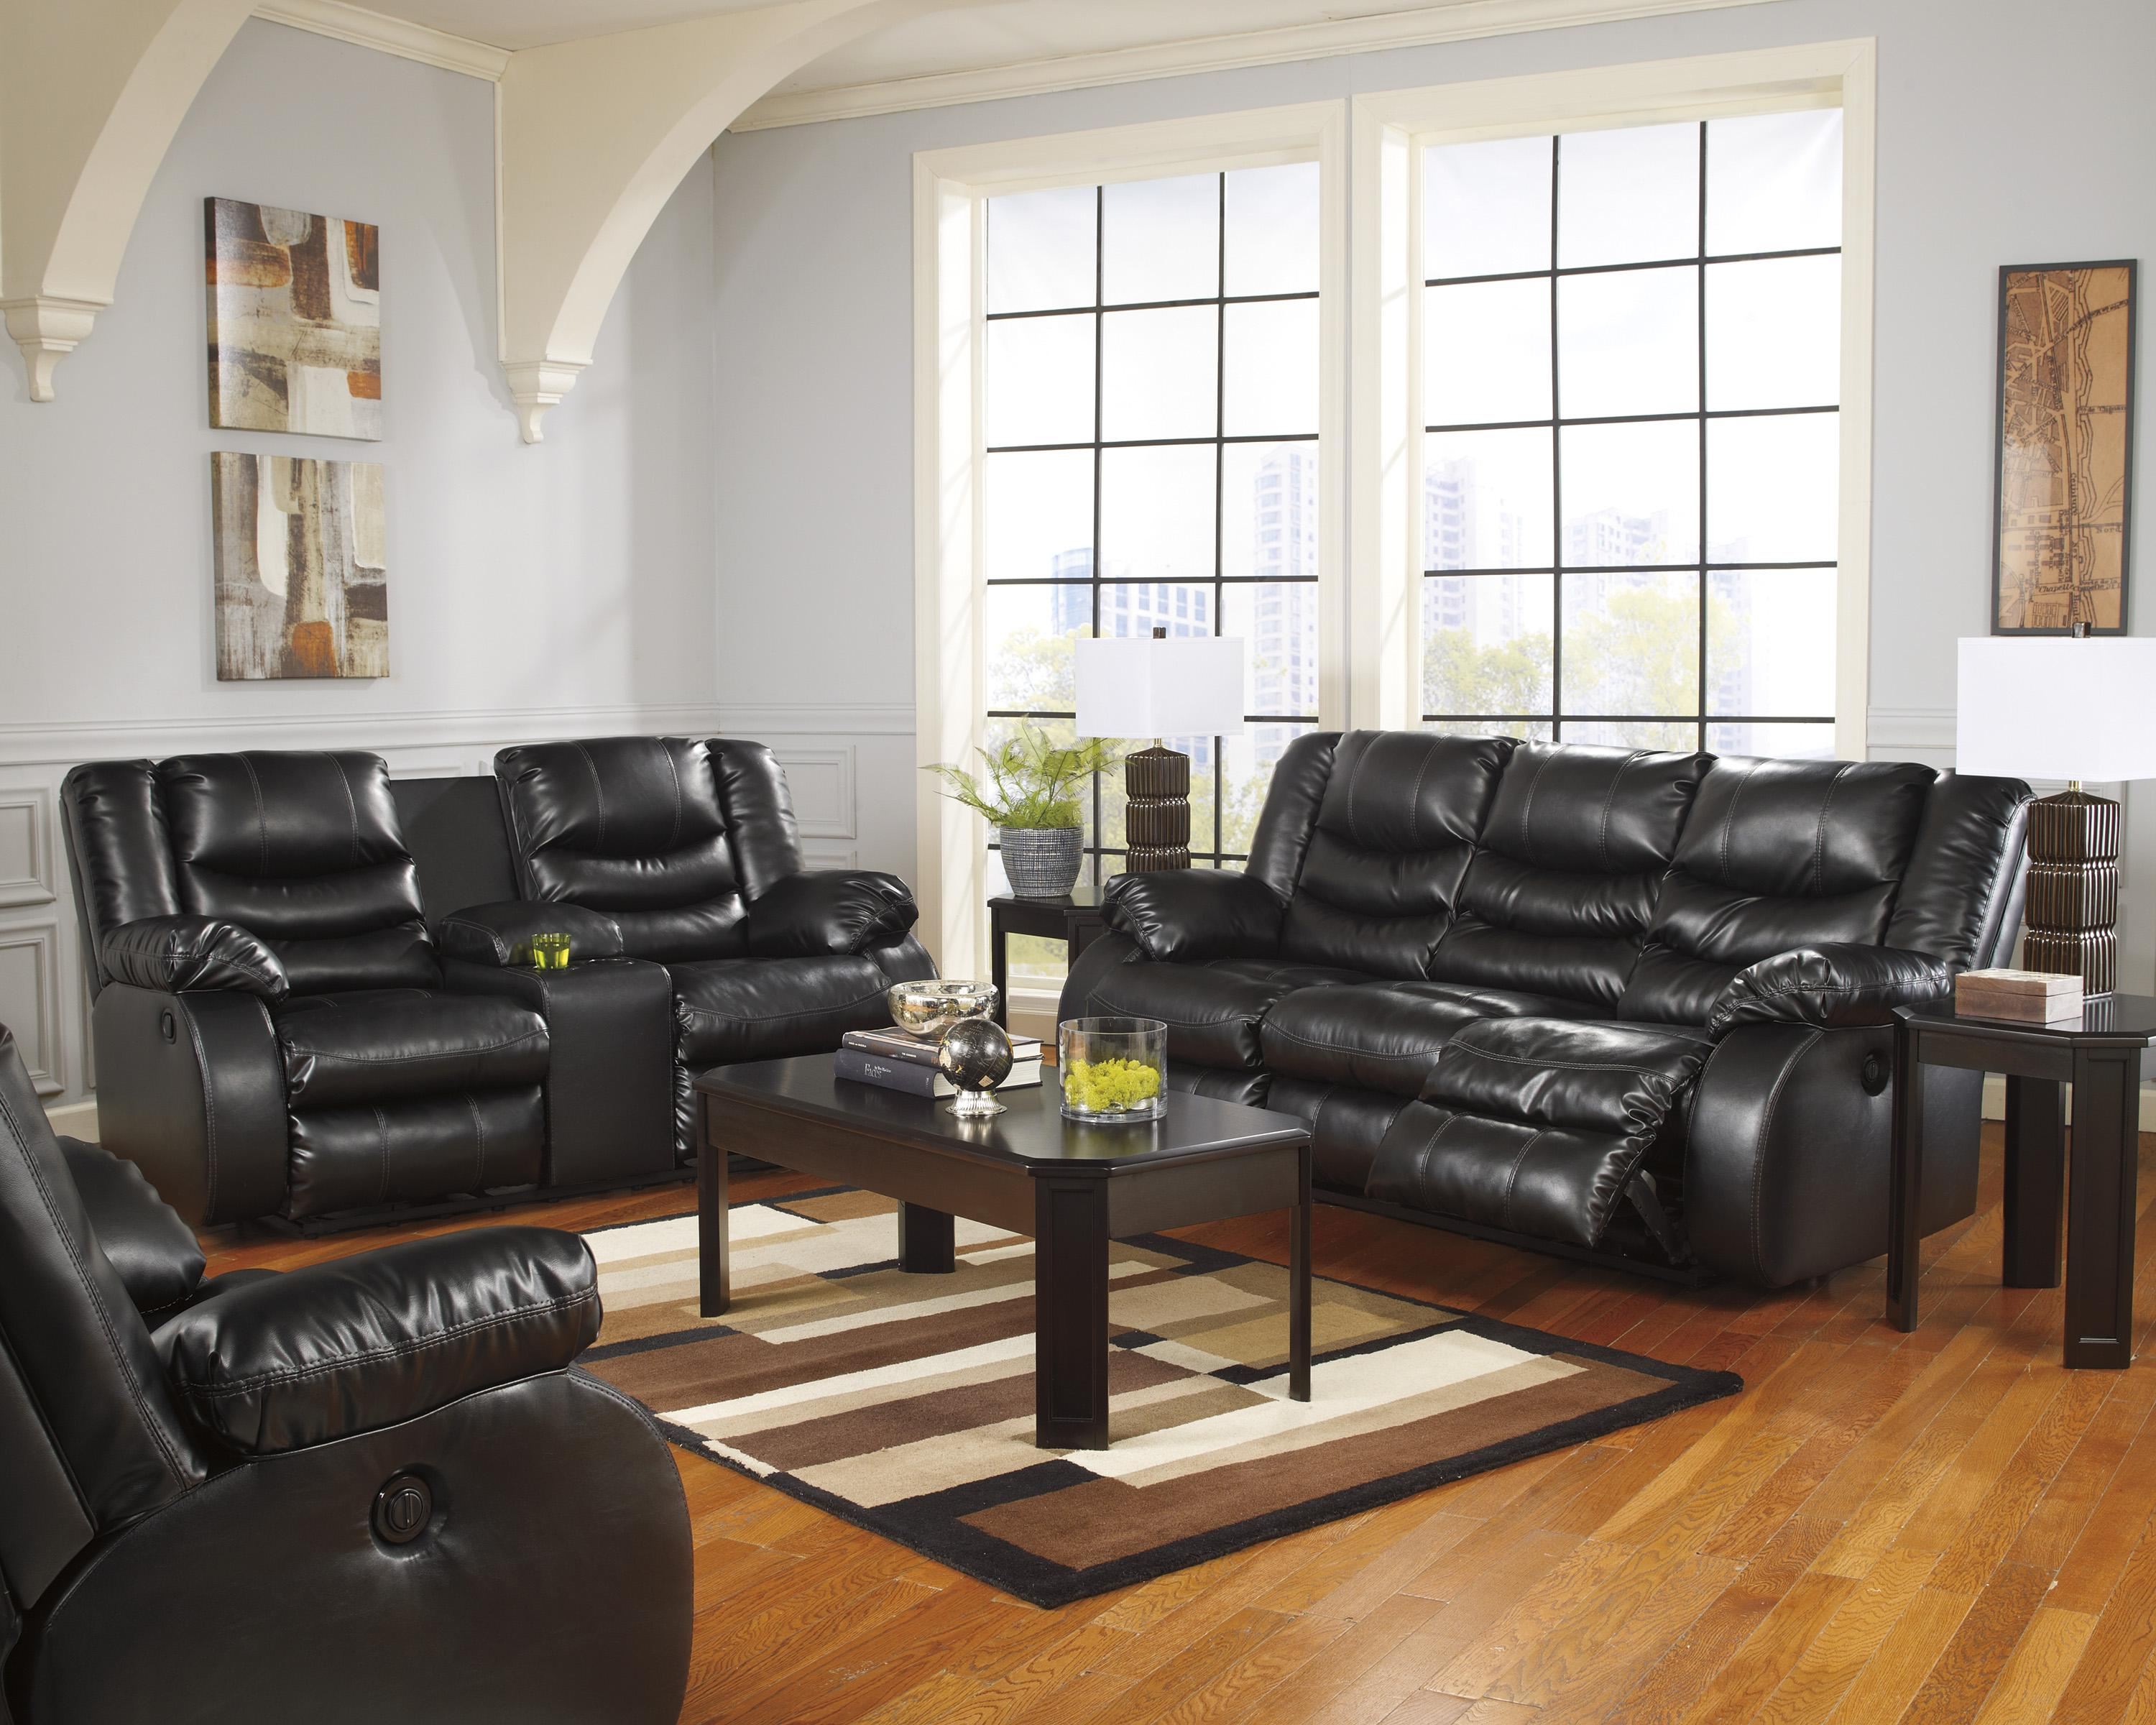 recliner living room set pictures of light grey rooms benchcraft by ashley linebacker durablend black reclining group